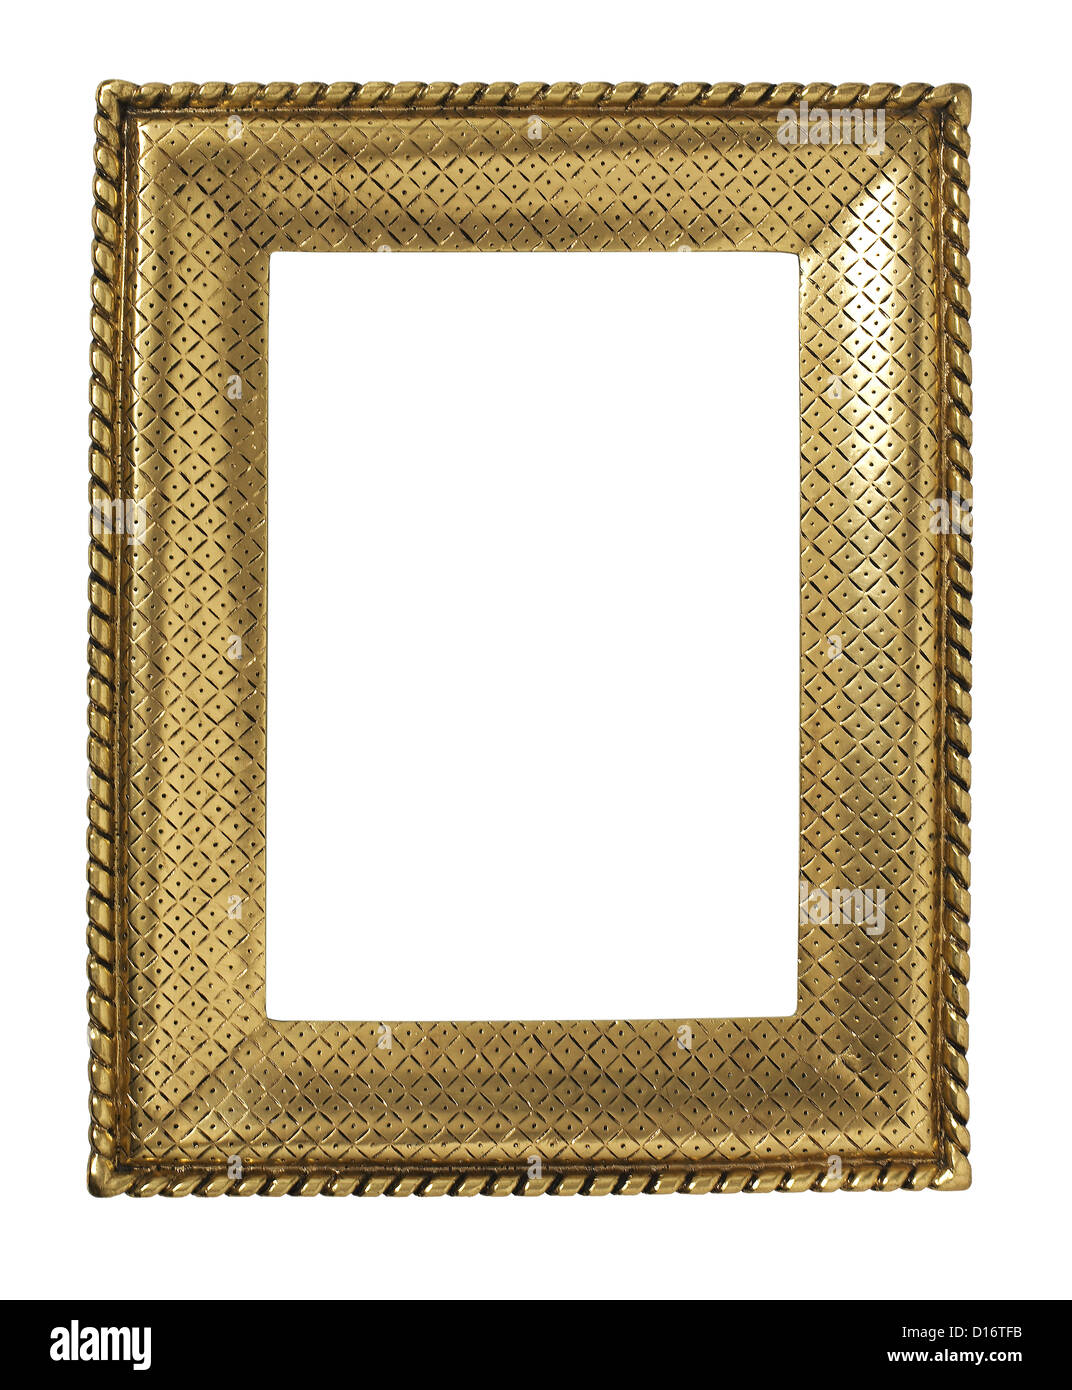 Bronze gold metal finish Picture frame - Stock Image